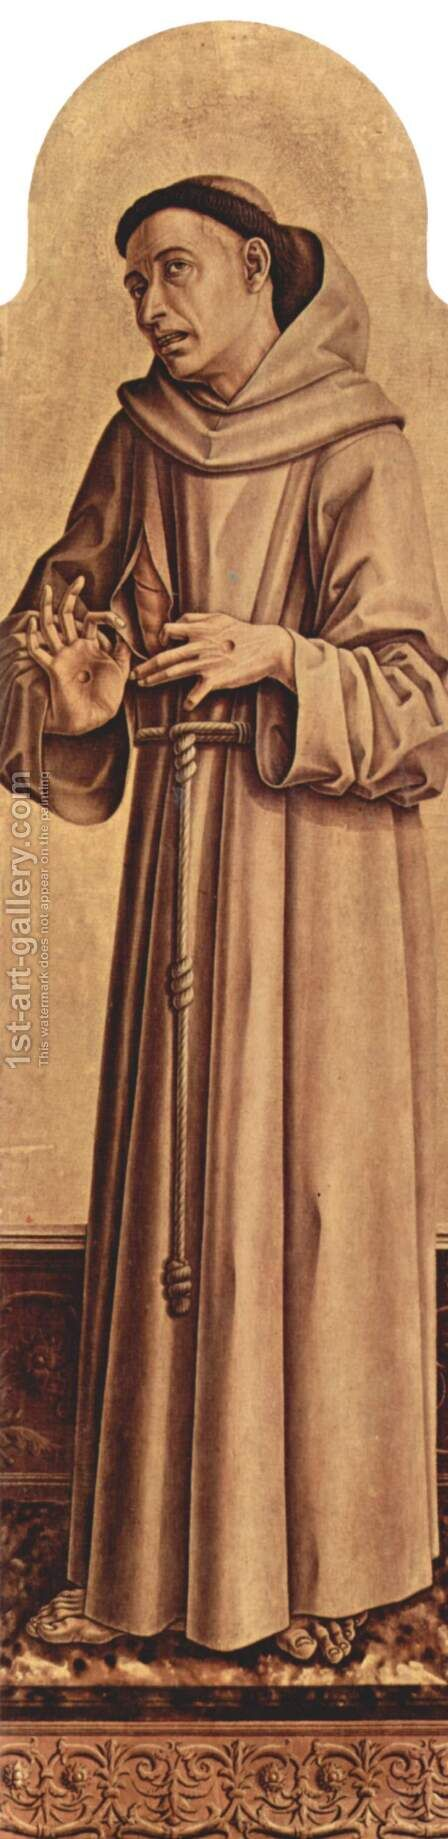 Saint Francis by Carlo Crivelli - Reproduction Oil Painting